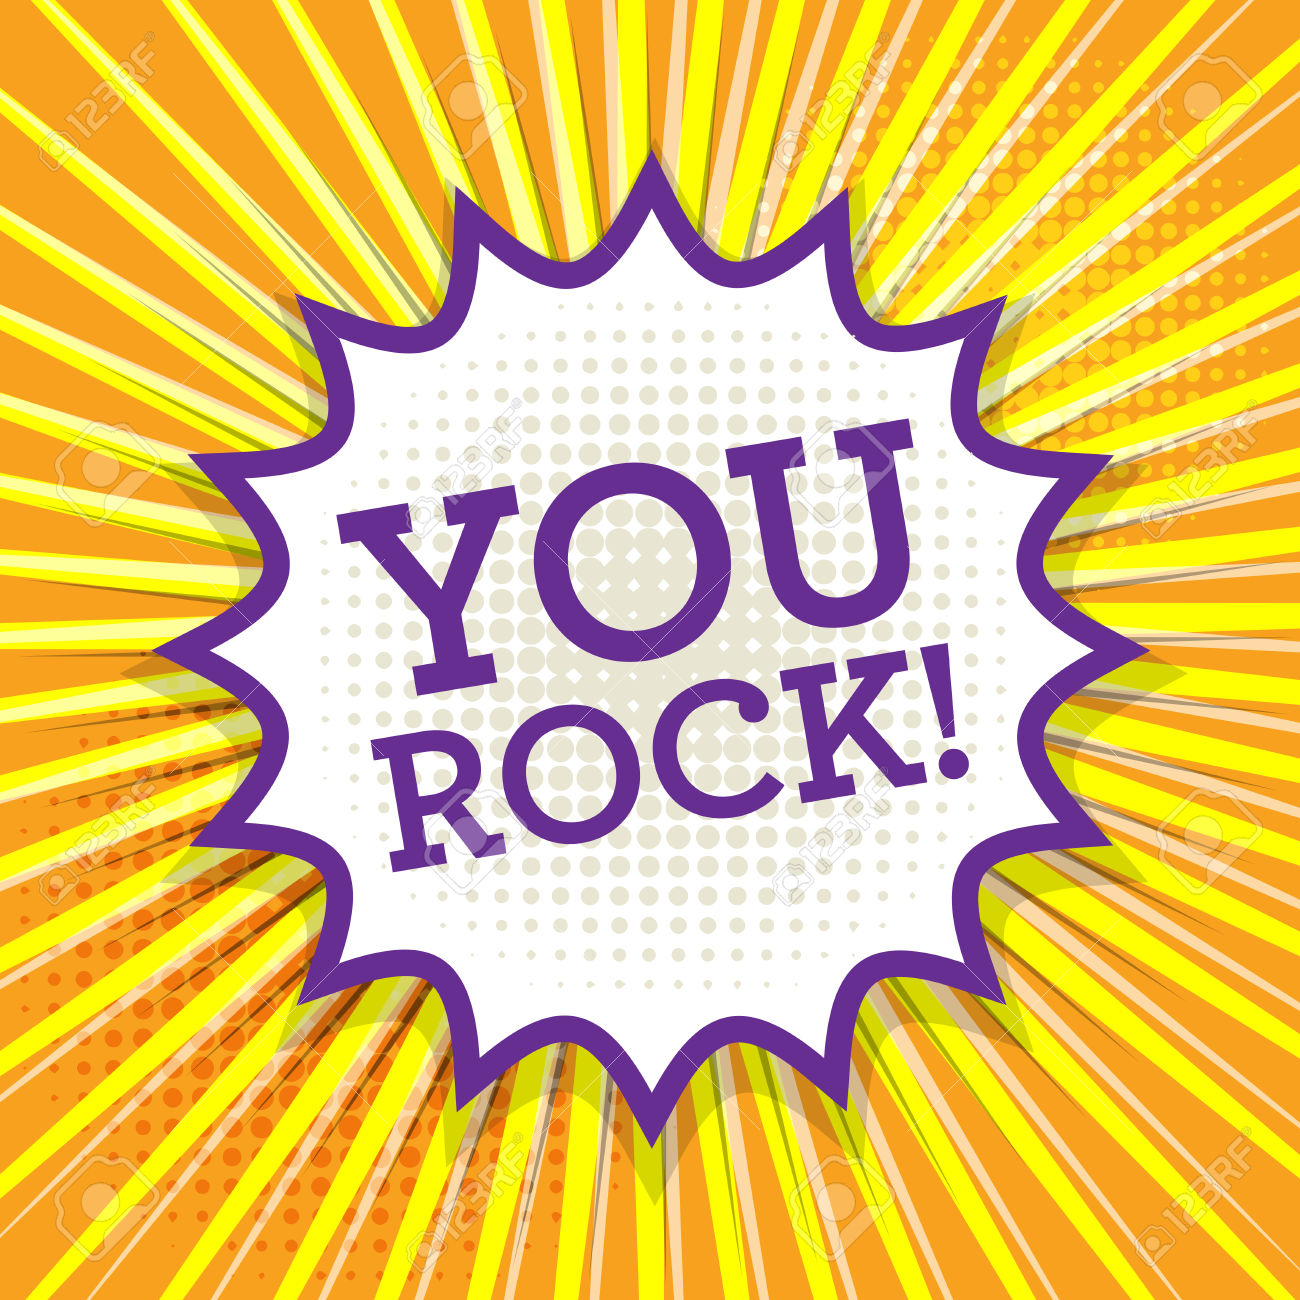 you rock: Comic book explosion with text-you rock: Comic book explosion with text You Rock, vector illustration-11